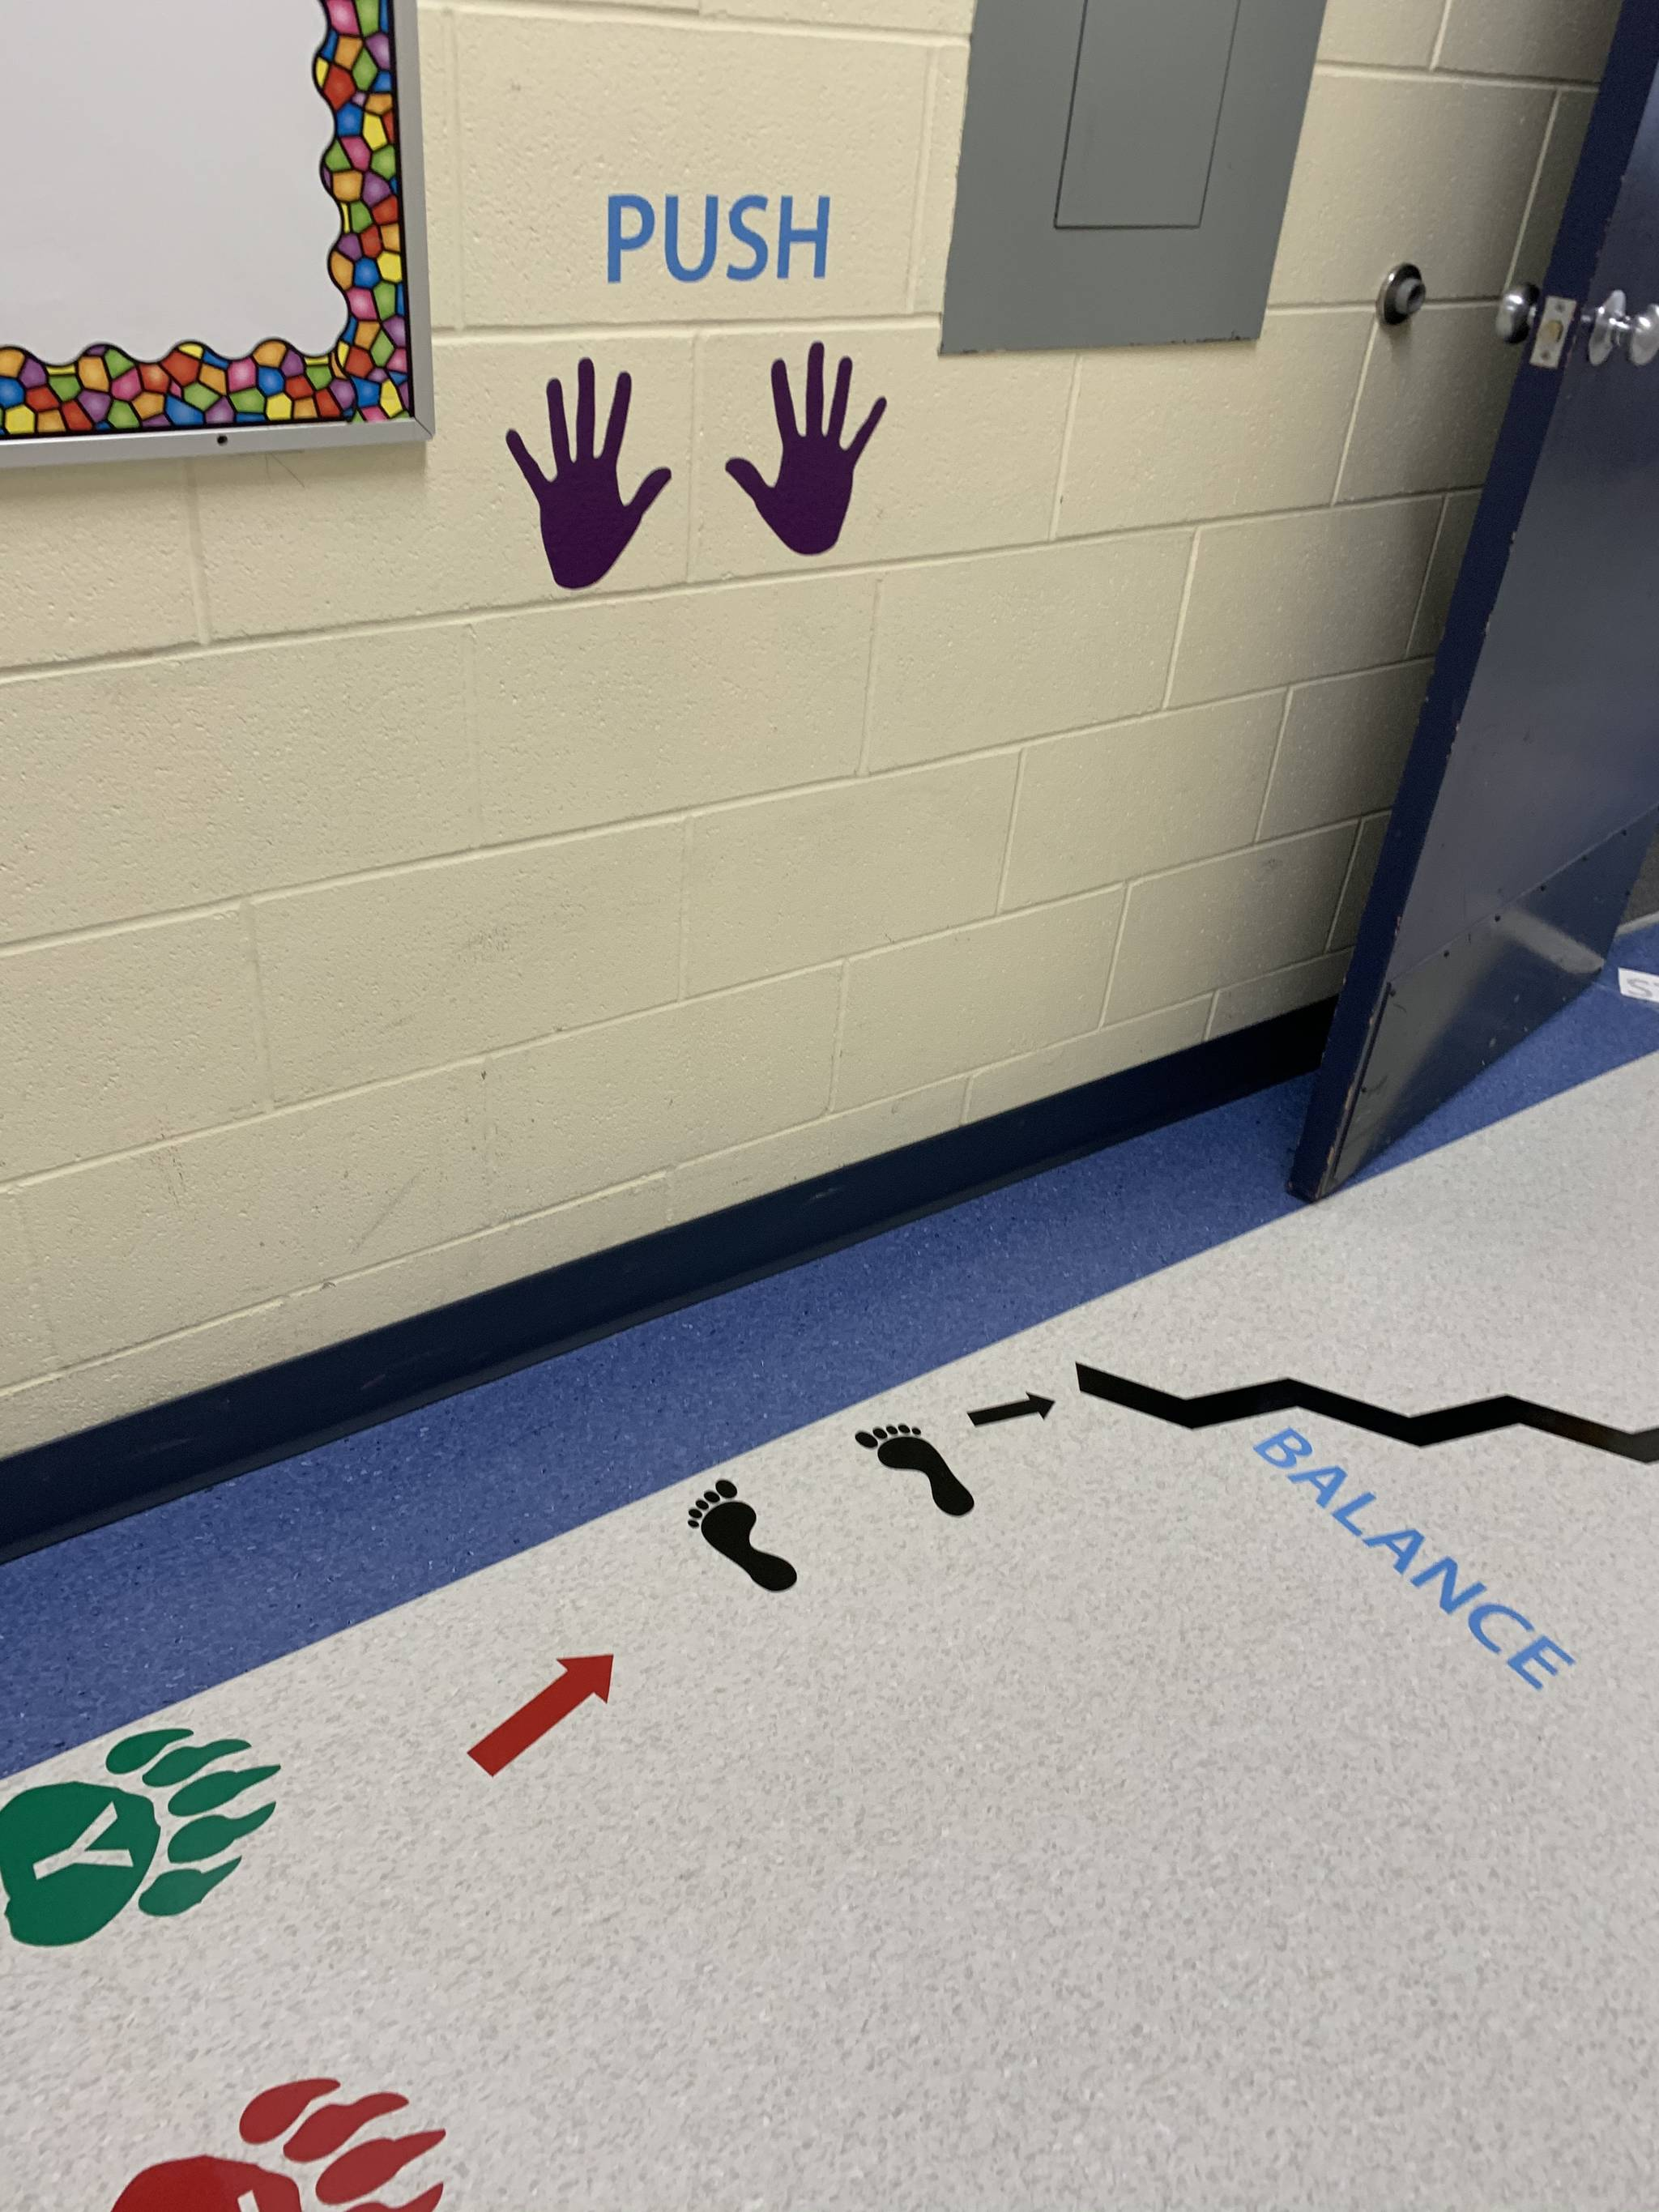 A Cranbrook mother is receiving praise across the world for her design of a sensory path aimed at helping kids in school when they need a movement break. (Chantal Marra file)